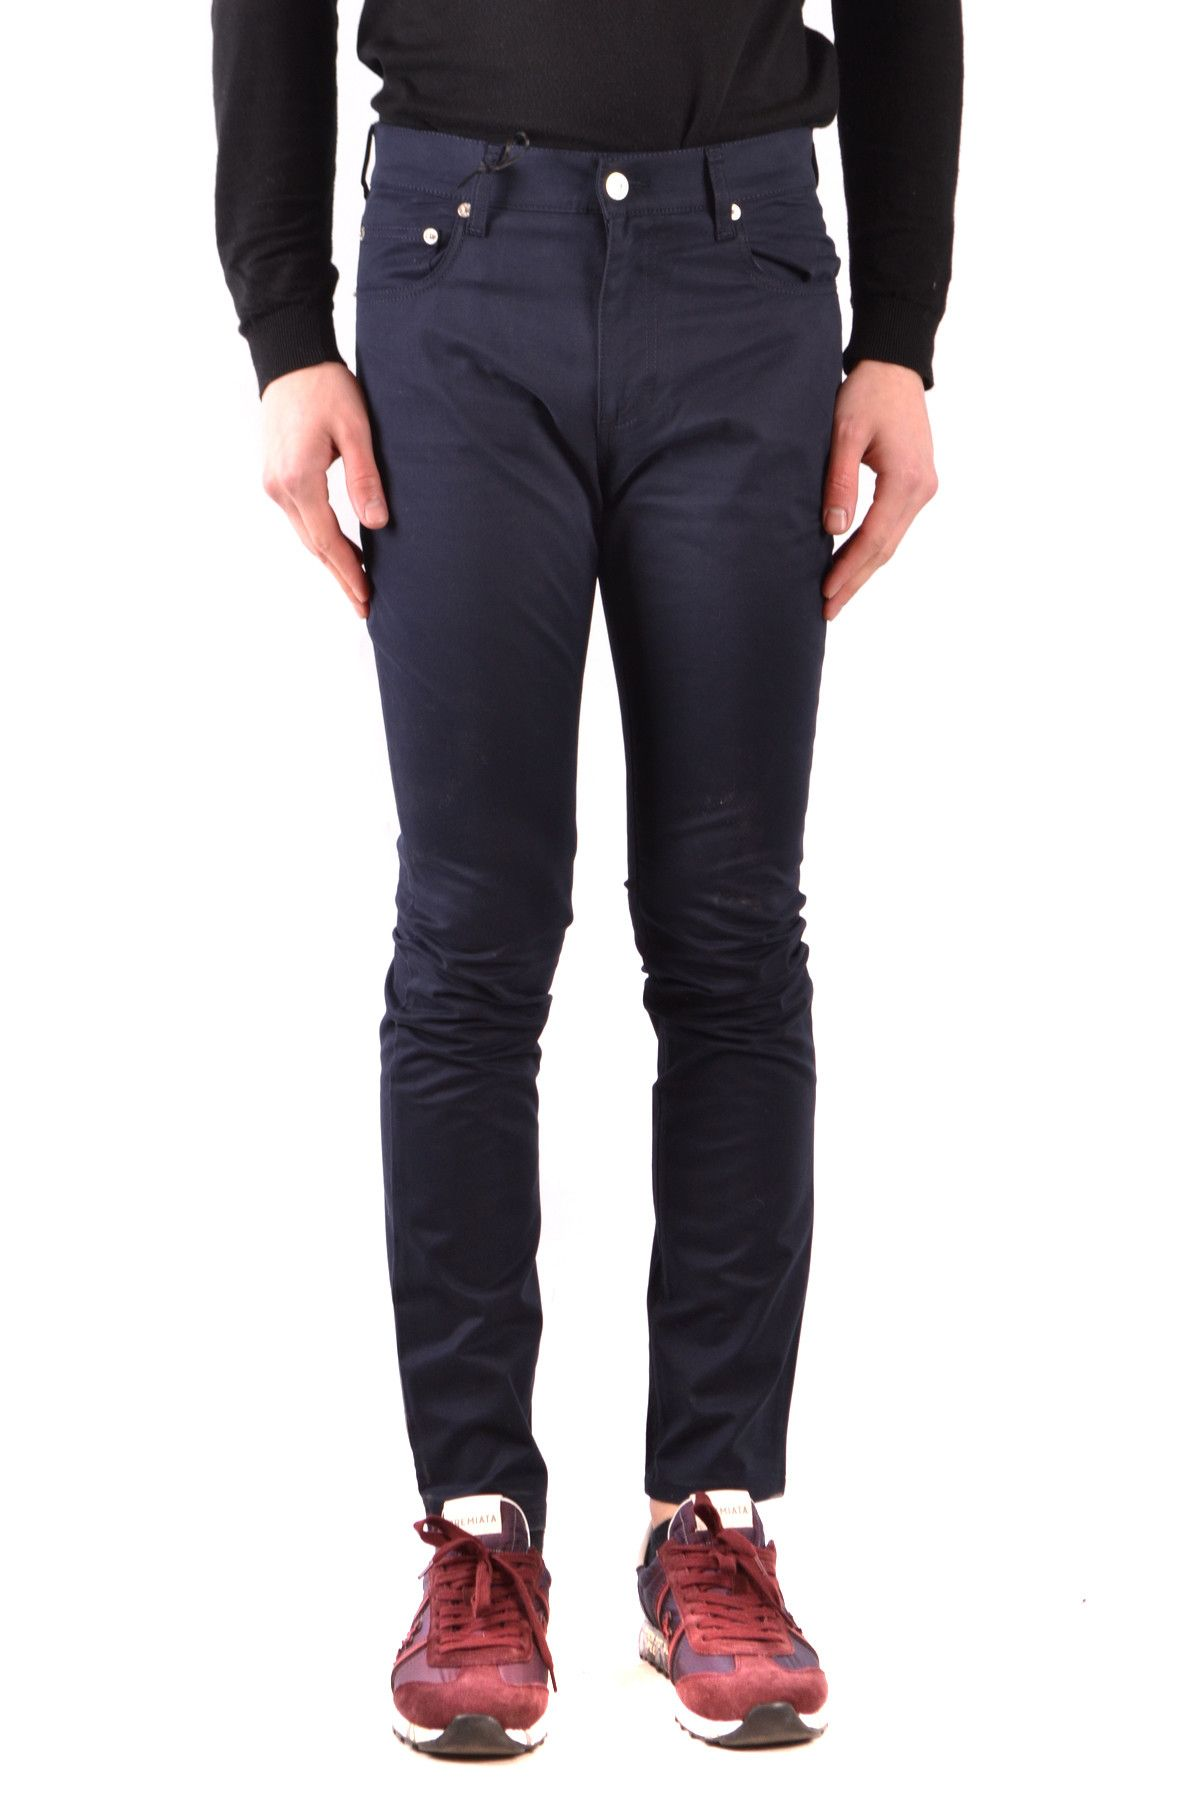 Moschino Men's Jeans In Blue